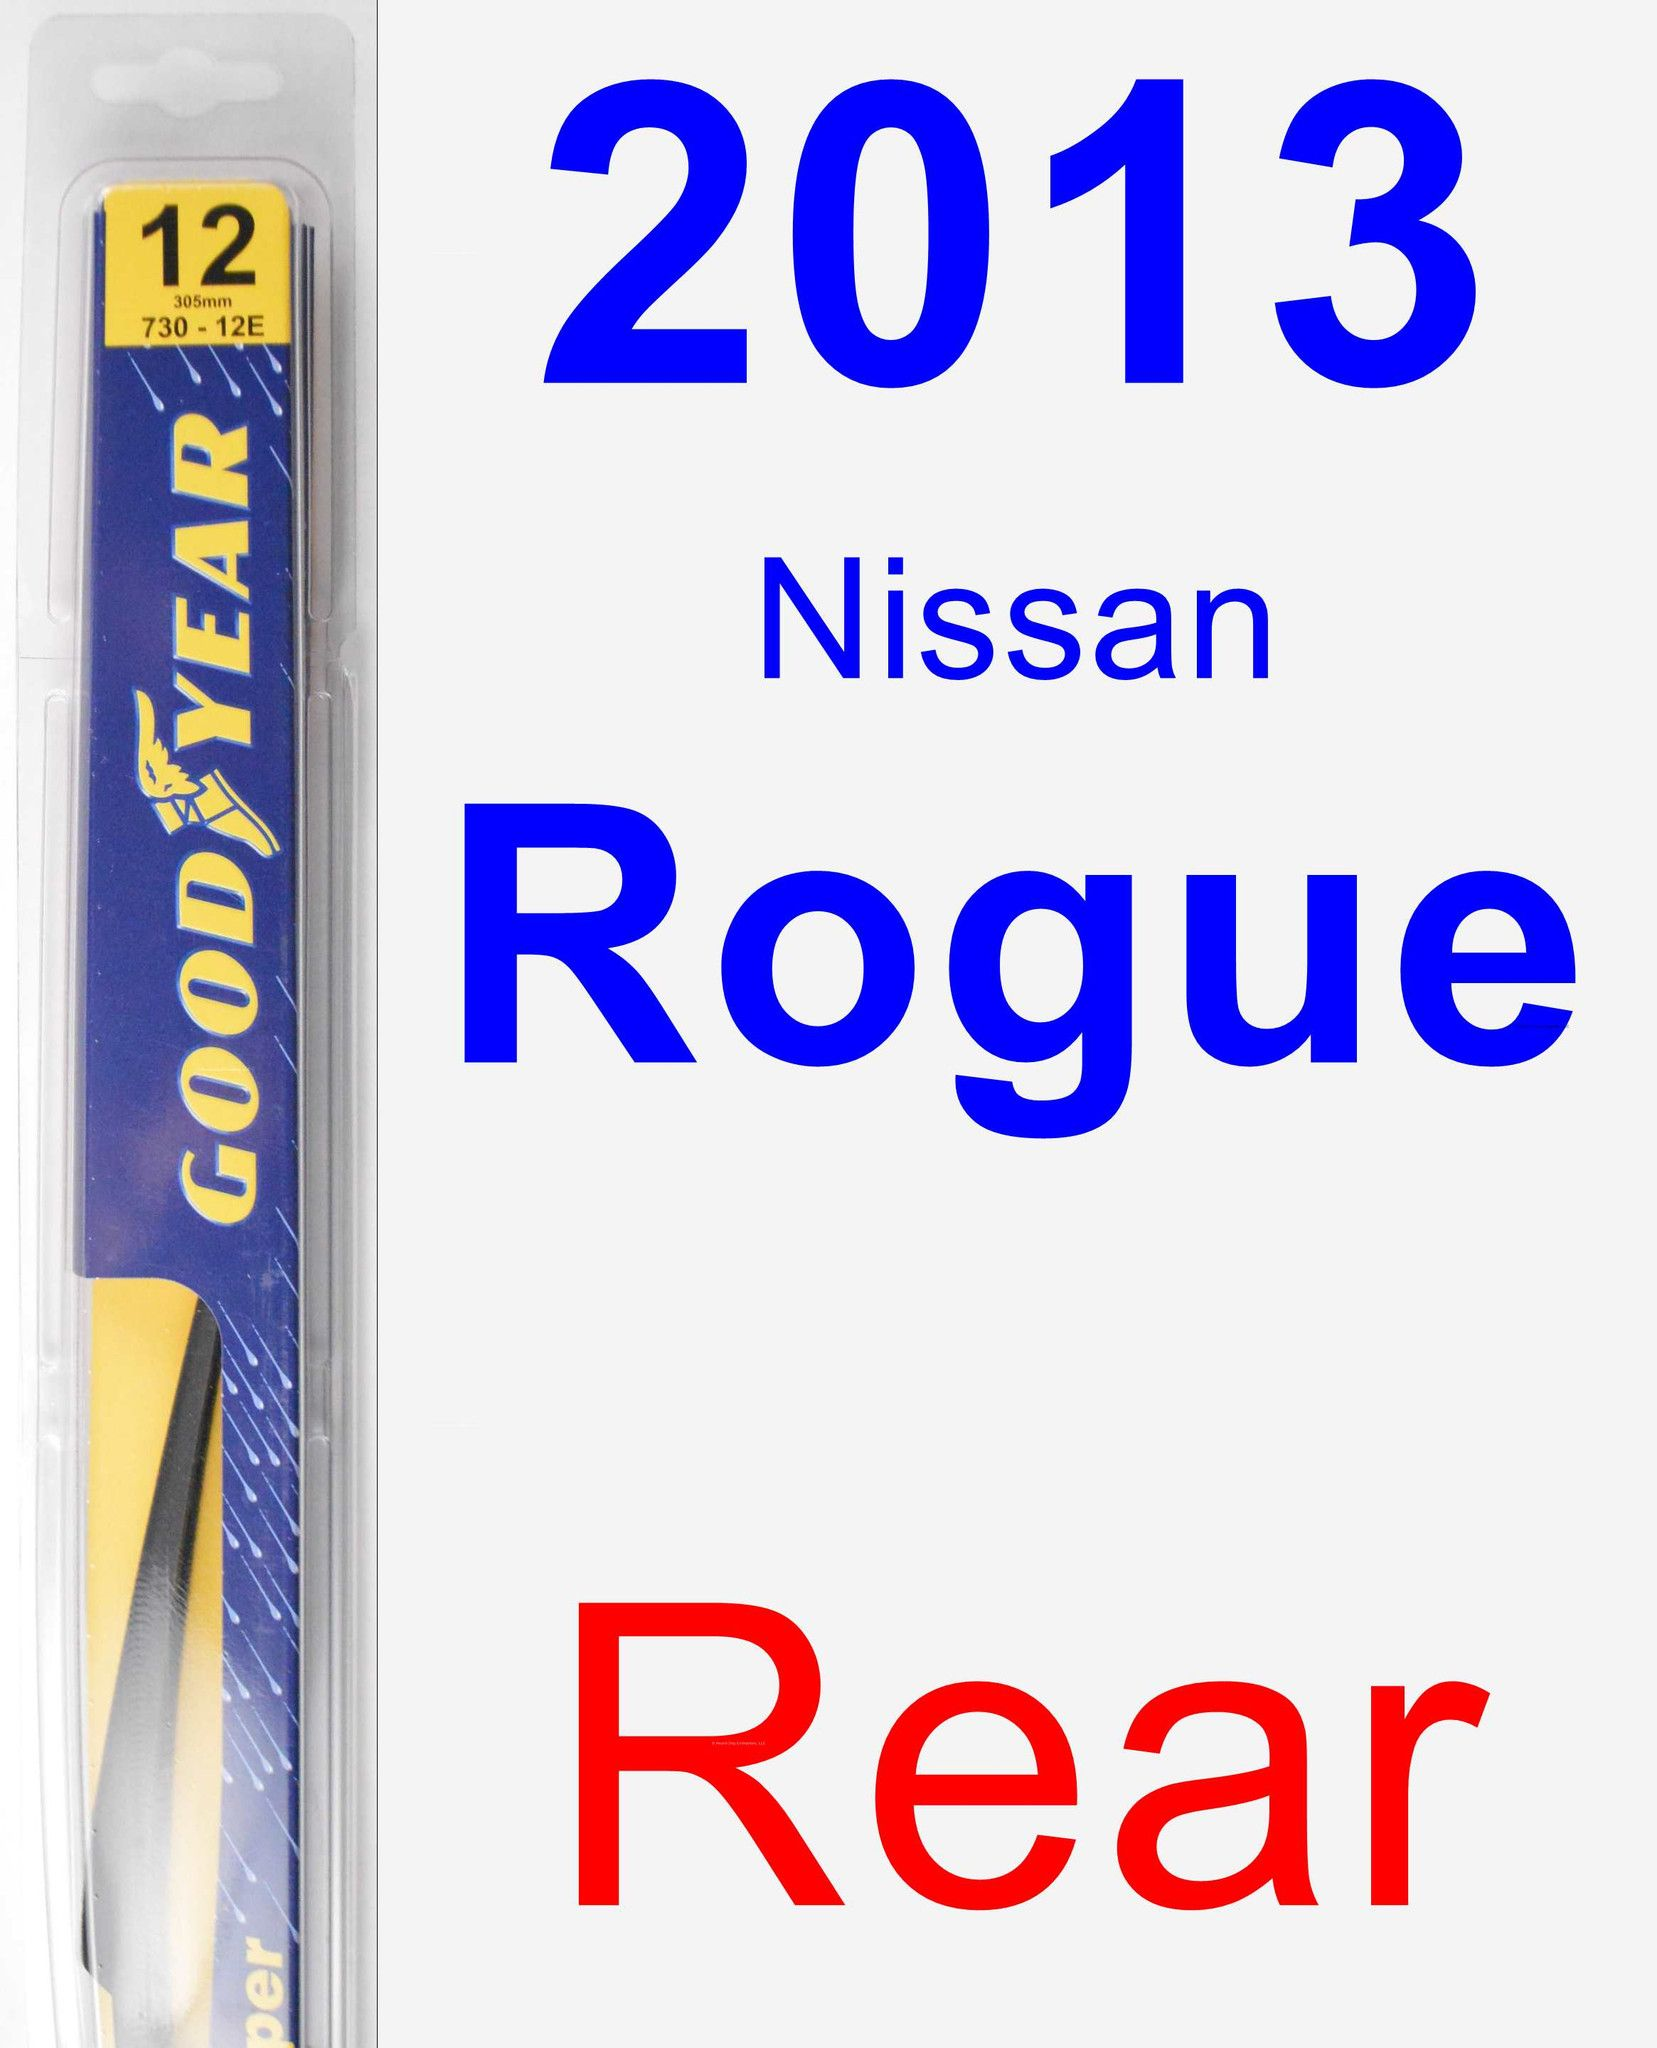 Rear Wiper Blade For 2013 Nissan Rogue Rear Toyota Venza 2014 Nissan Pathfinder Lexus Lx570